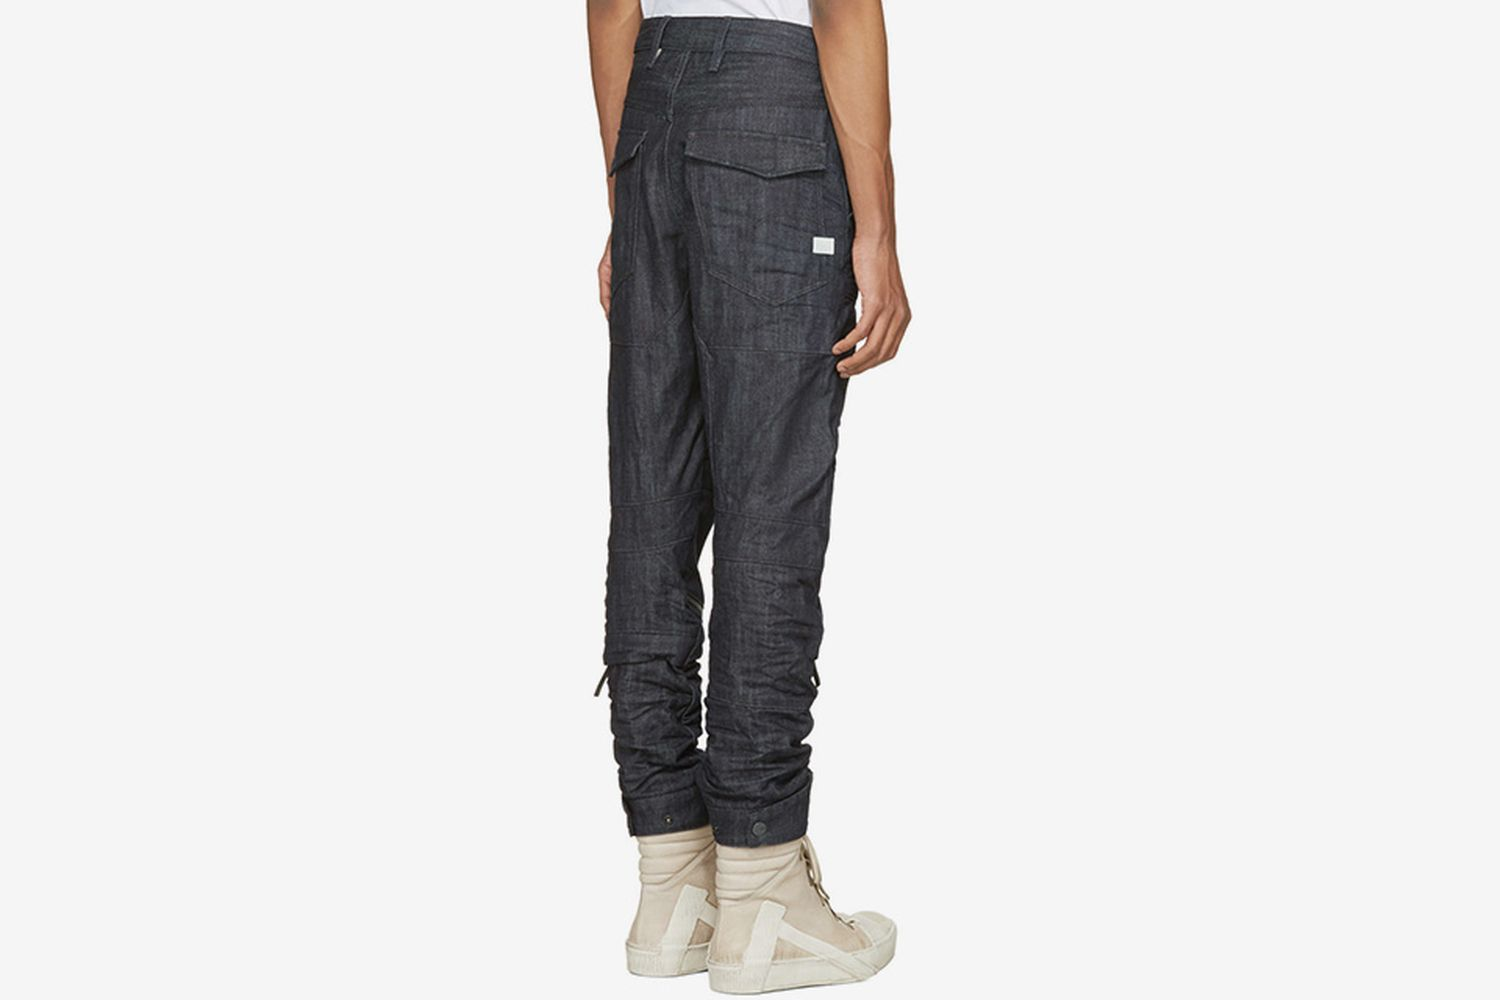 Rackam 3D Tapered Jeans